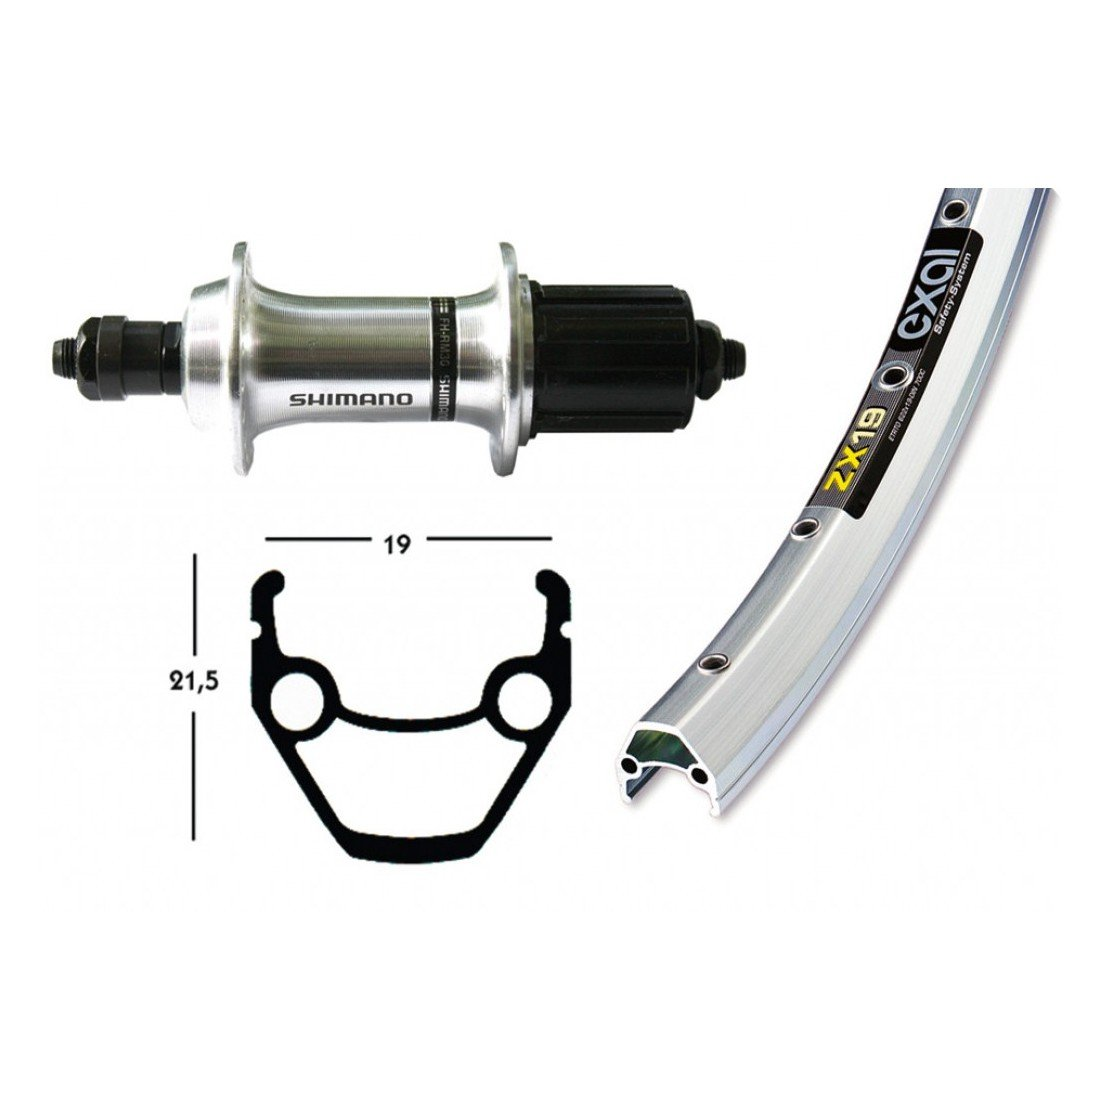 Bike-Parts 28´´ Hinterrad Exal ZX 19 + Shimano Tourney TX500 8-10-fach (QR)